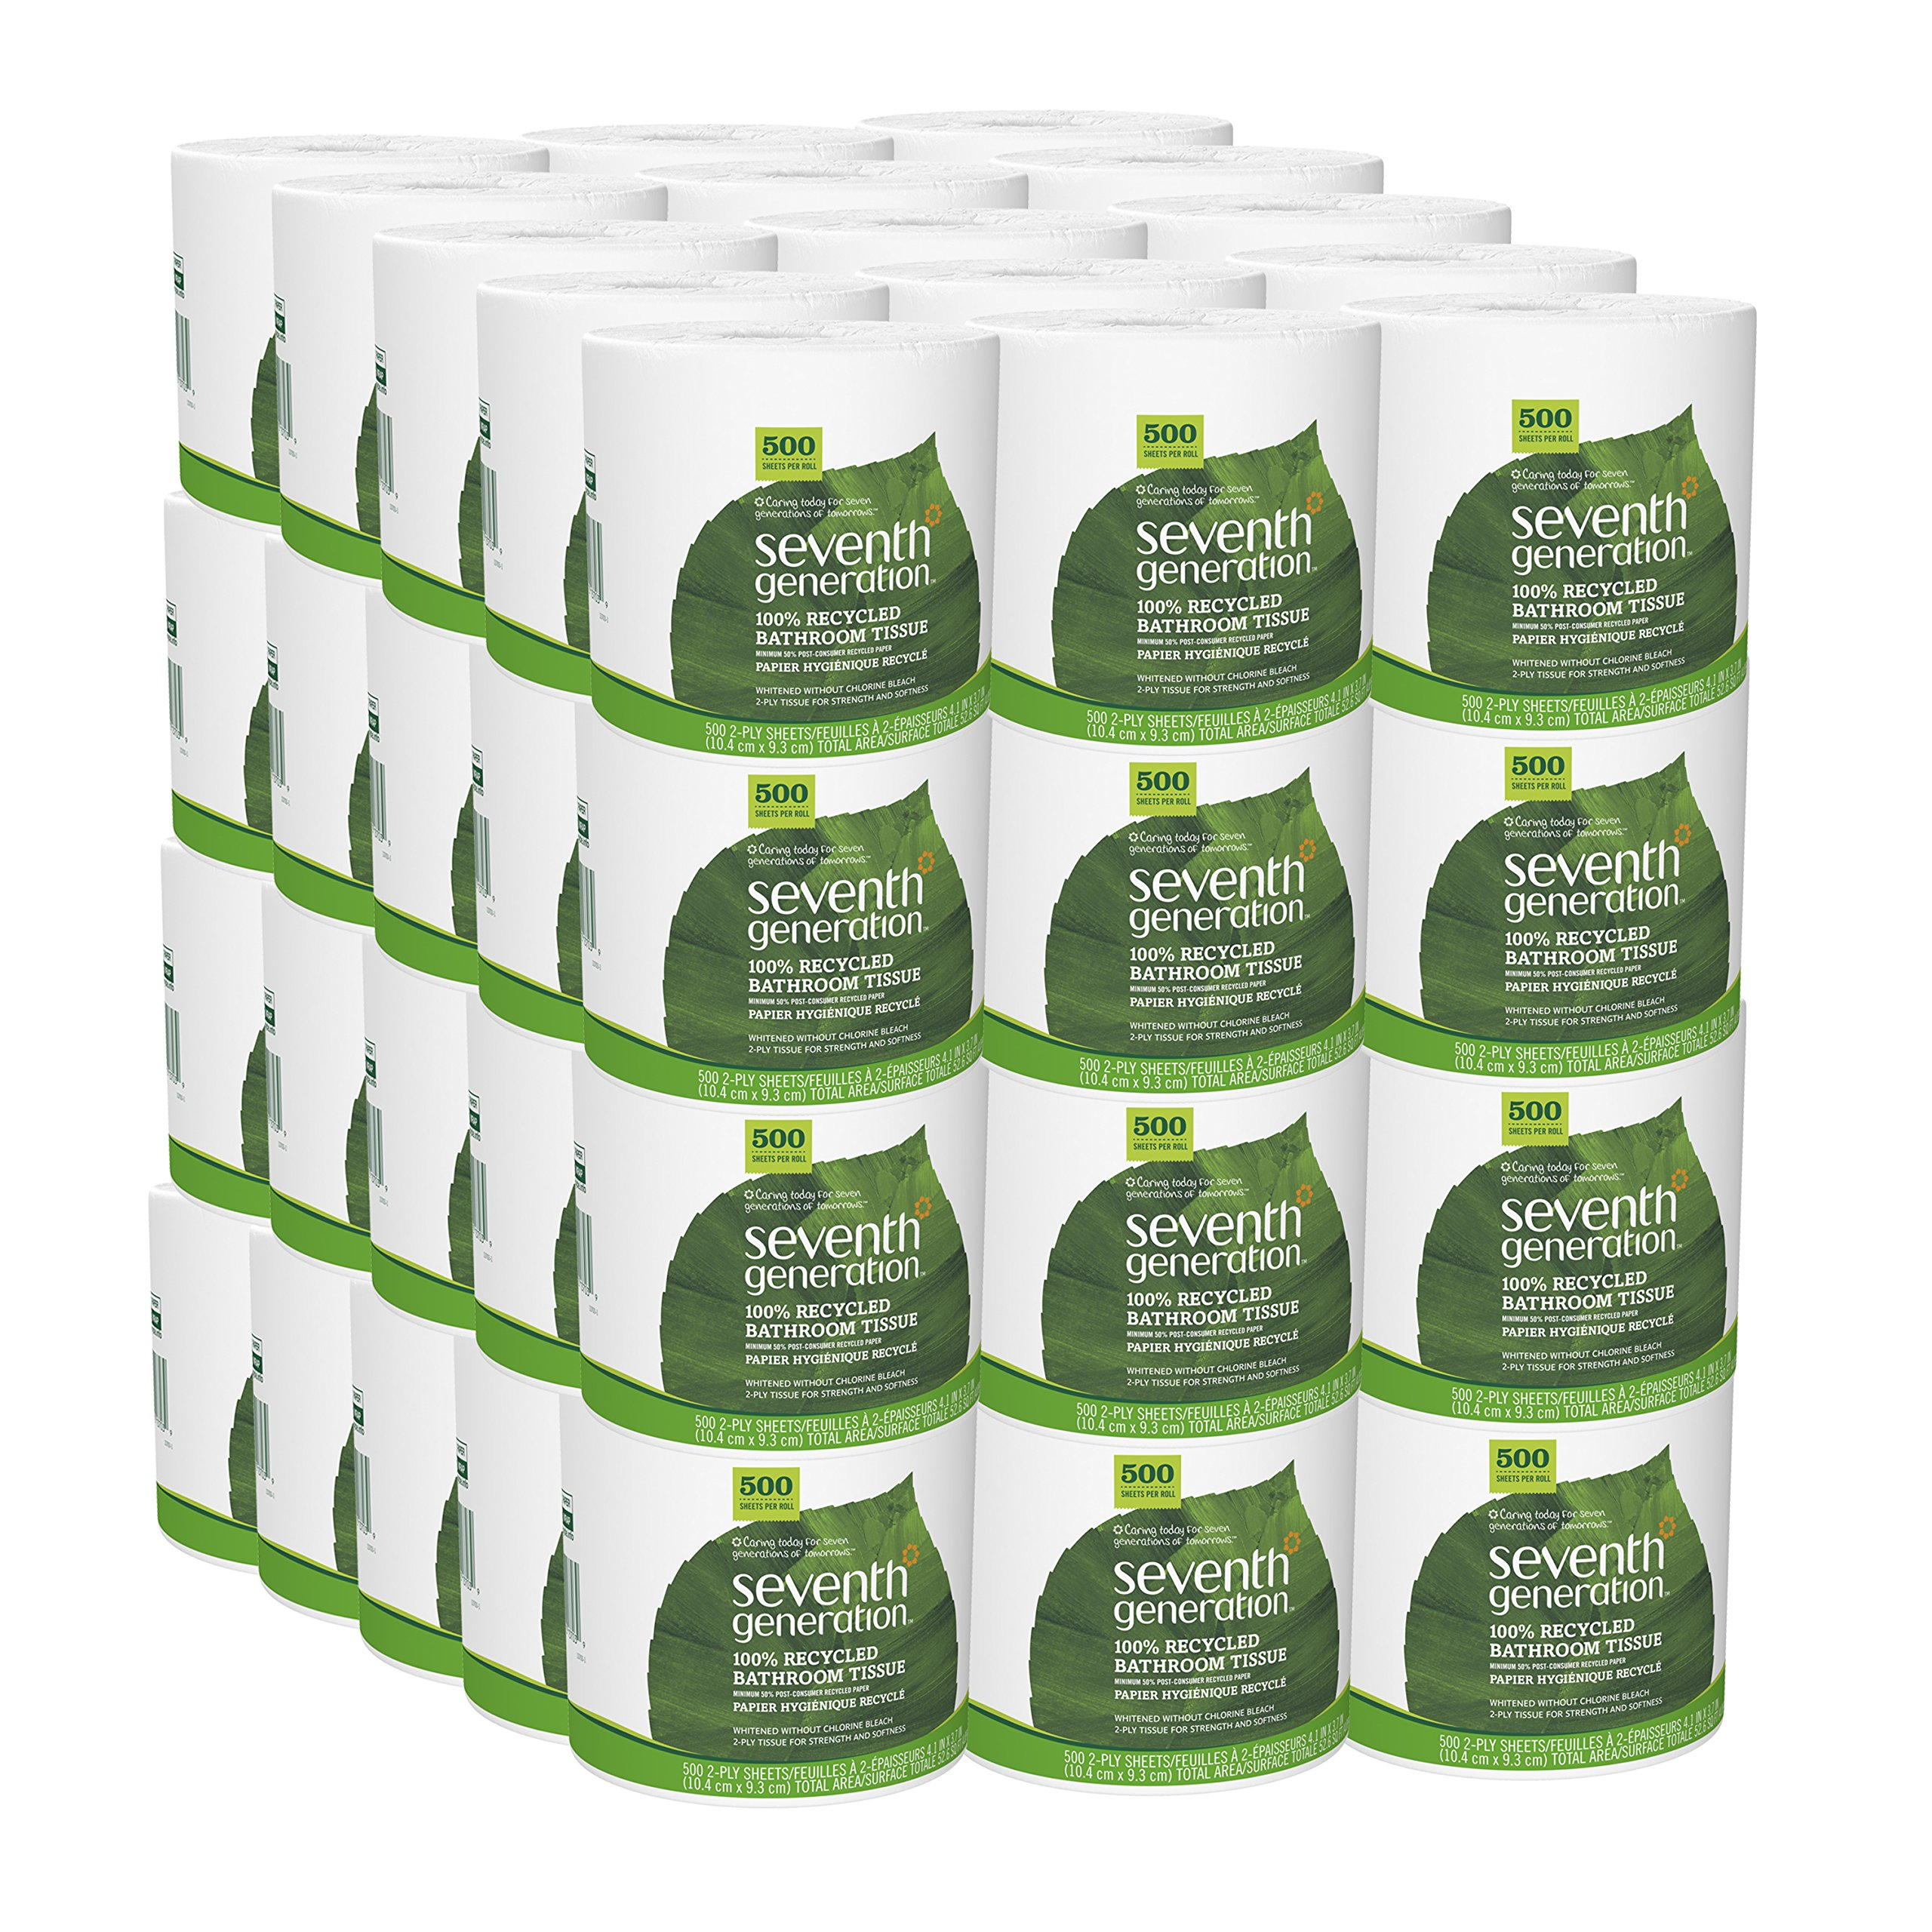 Seventh Generation White Toilet Paper 2-ply 100% Recycled Paper 500 Sheets - Pack of 60 by Seventh Generation